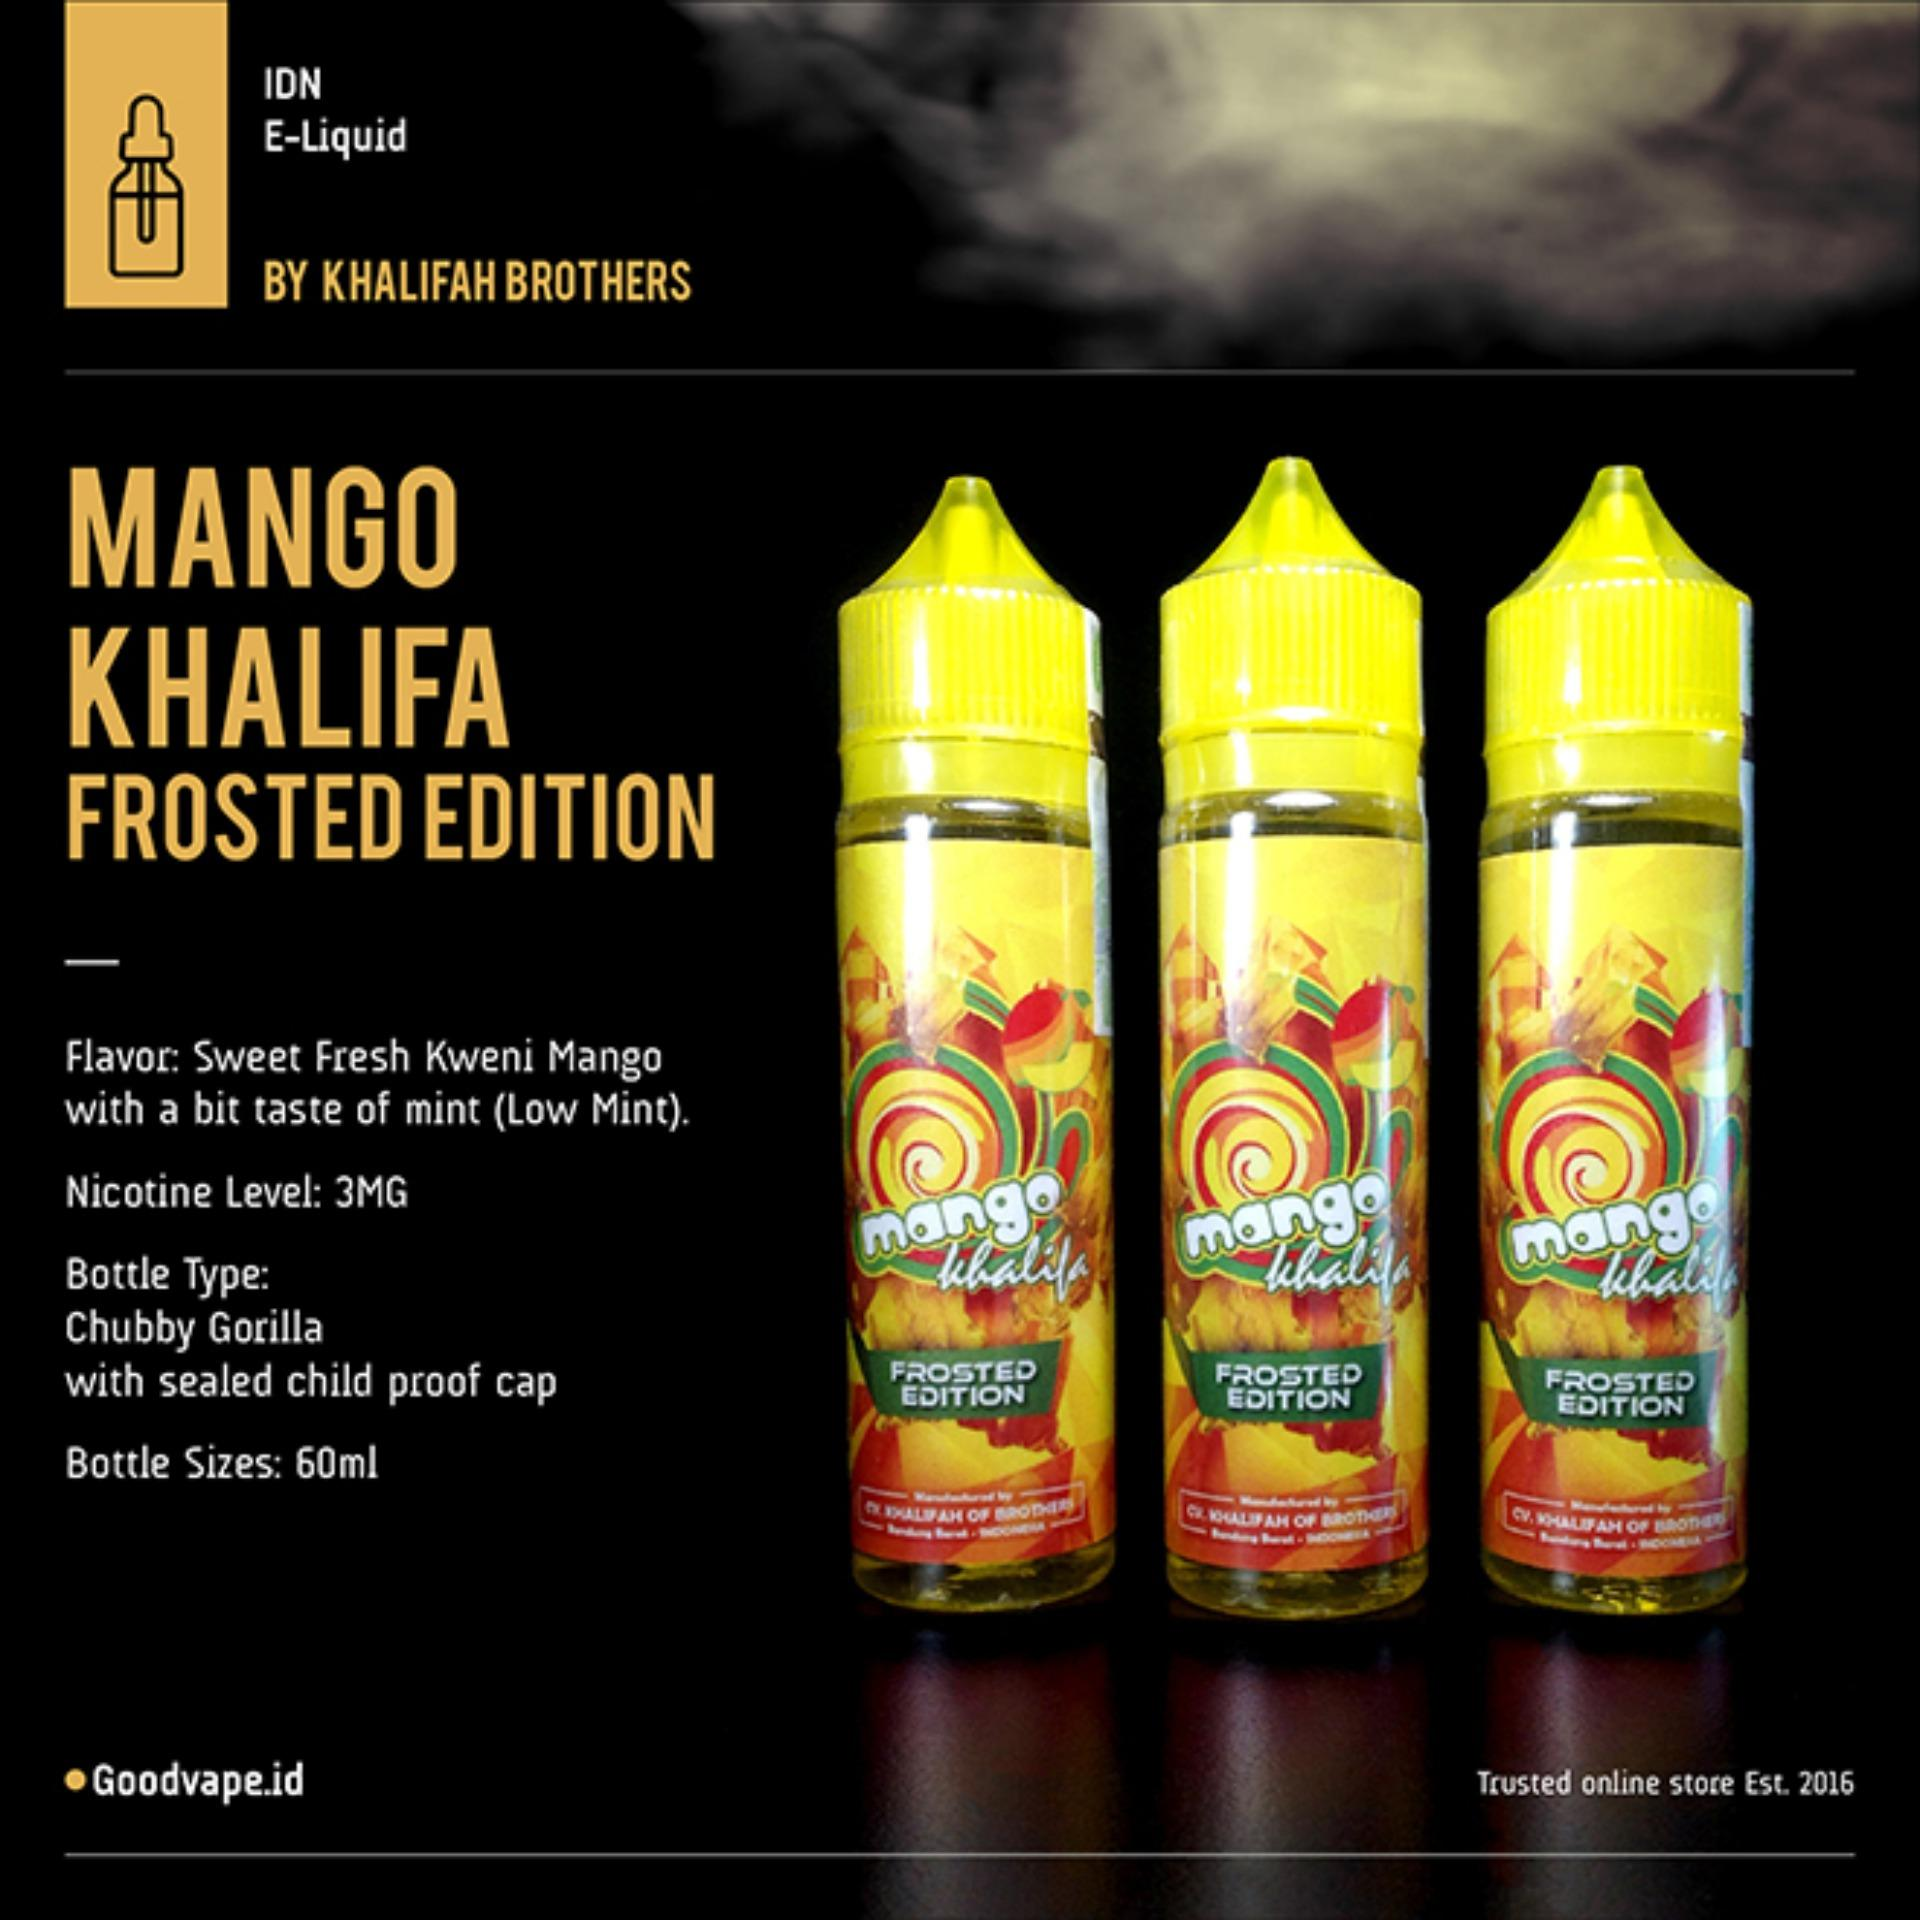 Buy Sell Cheapest Mango Alphonso Salt Best Quality Product Deals Nic Indonesian Juice Elite Bacco Coffee Culture Aphonso Liquid Khalifa Frosted Edition 60ml By Of Brothers